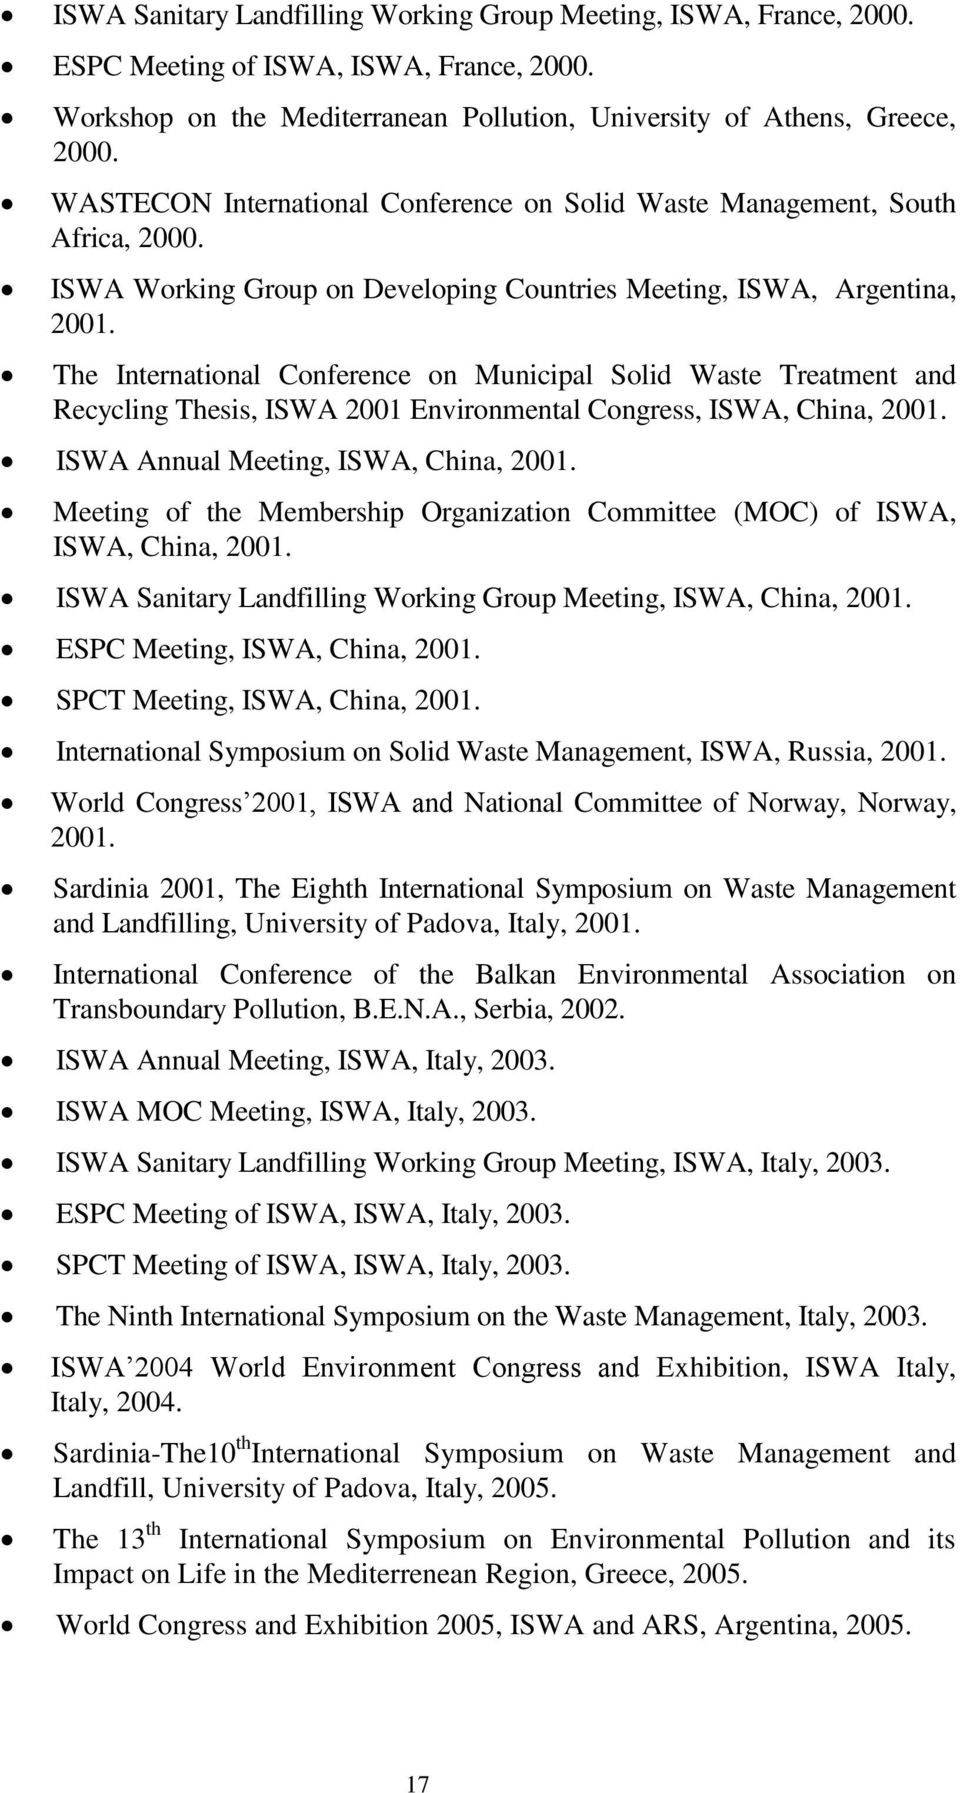 The International Conference on Municipal Solid Waste Treatment and Recycling Thesis, ISWA 2001 Environmental Congress, ISWA, China, 2001. ISWA Annual Meeting, ISWA, China, 2001.